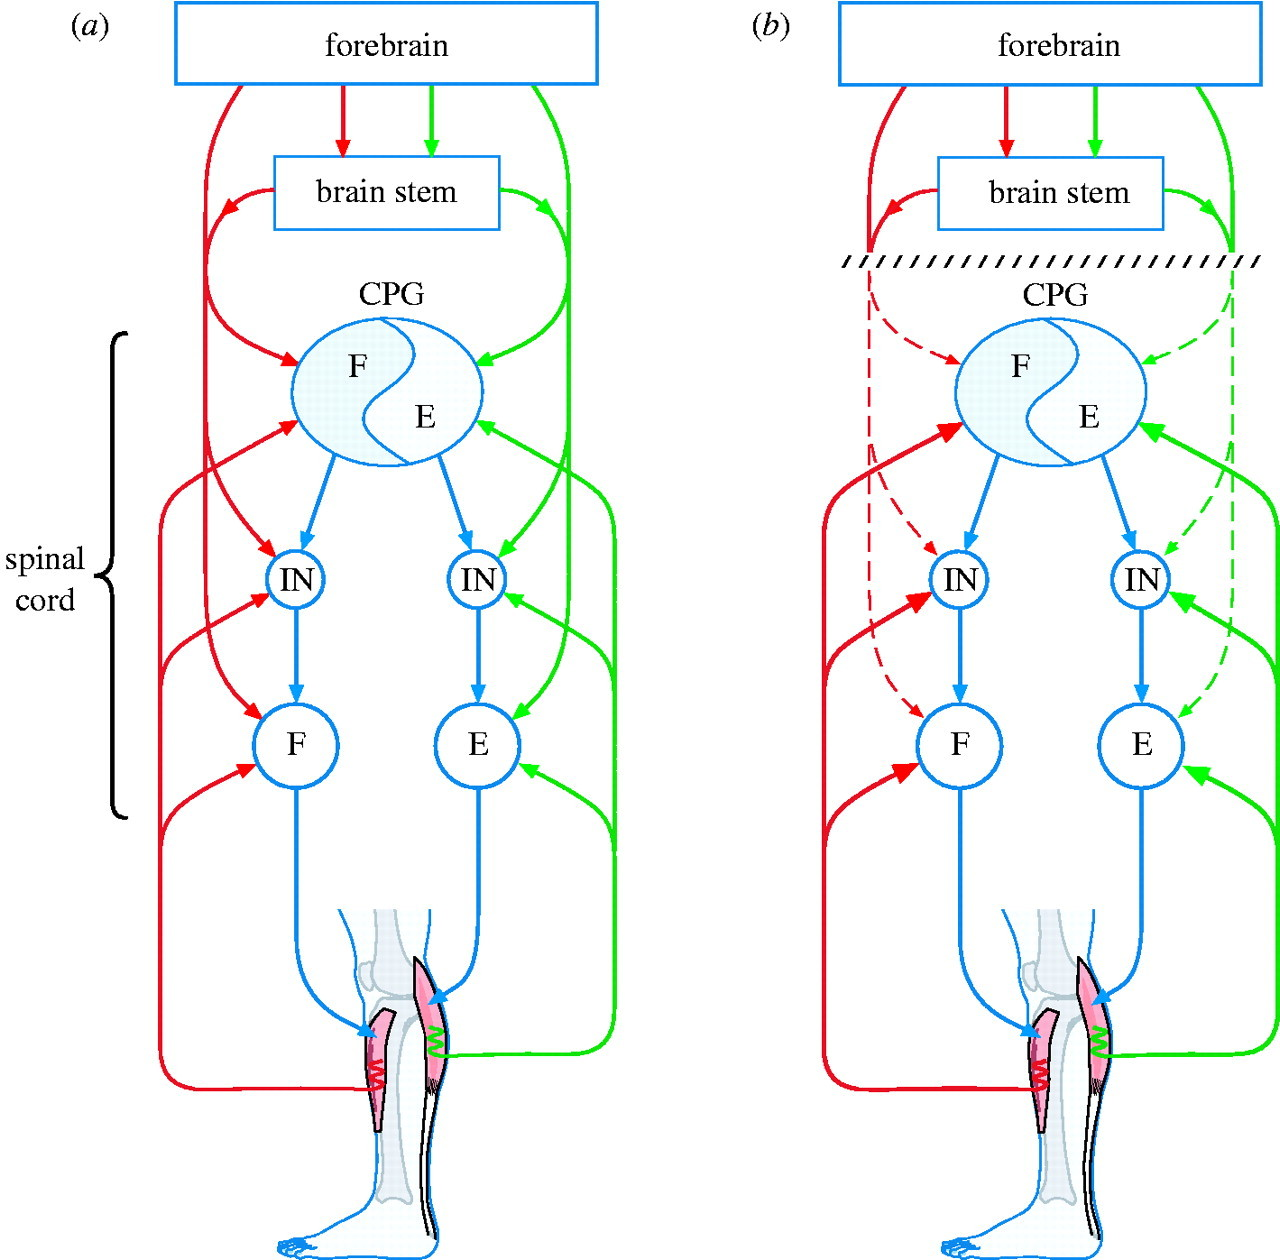 Plasticity of connections underlying locomotor recovery